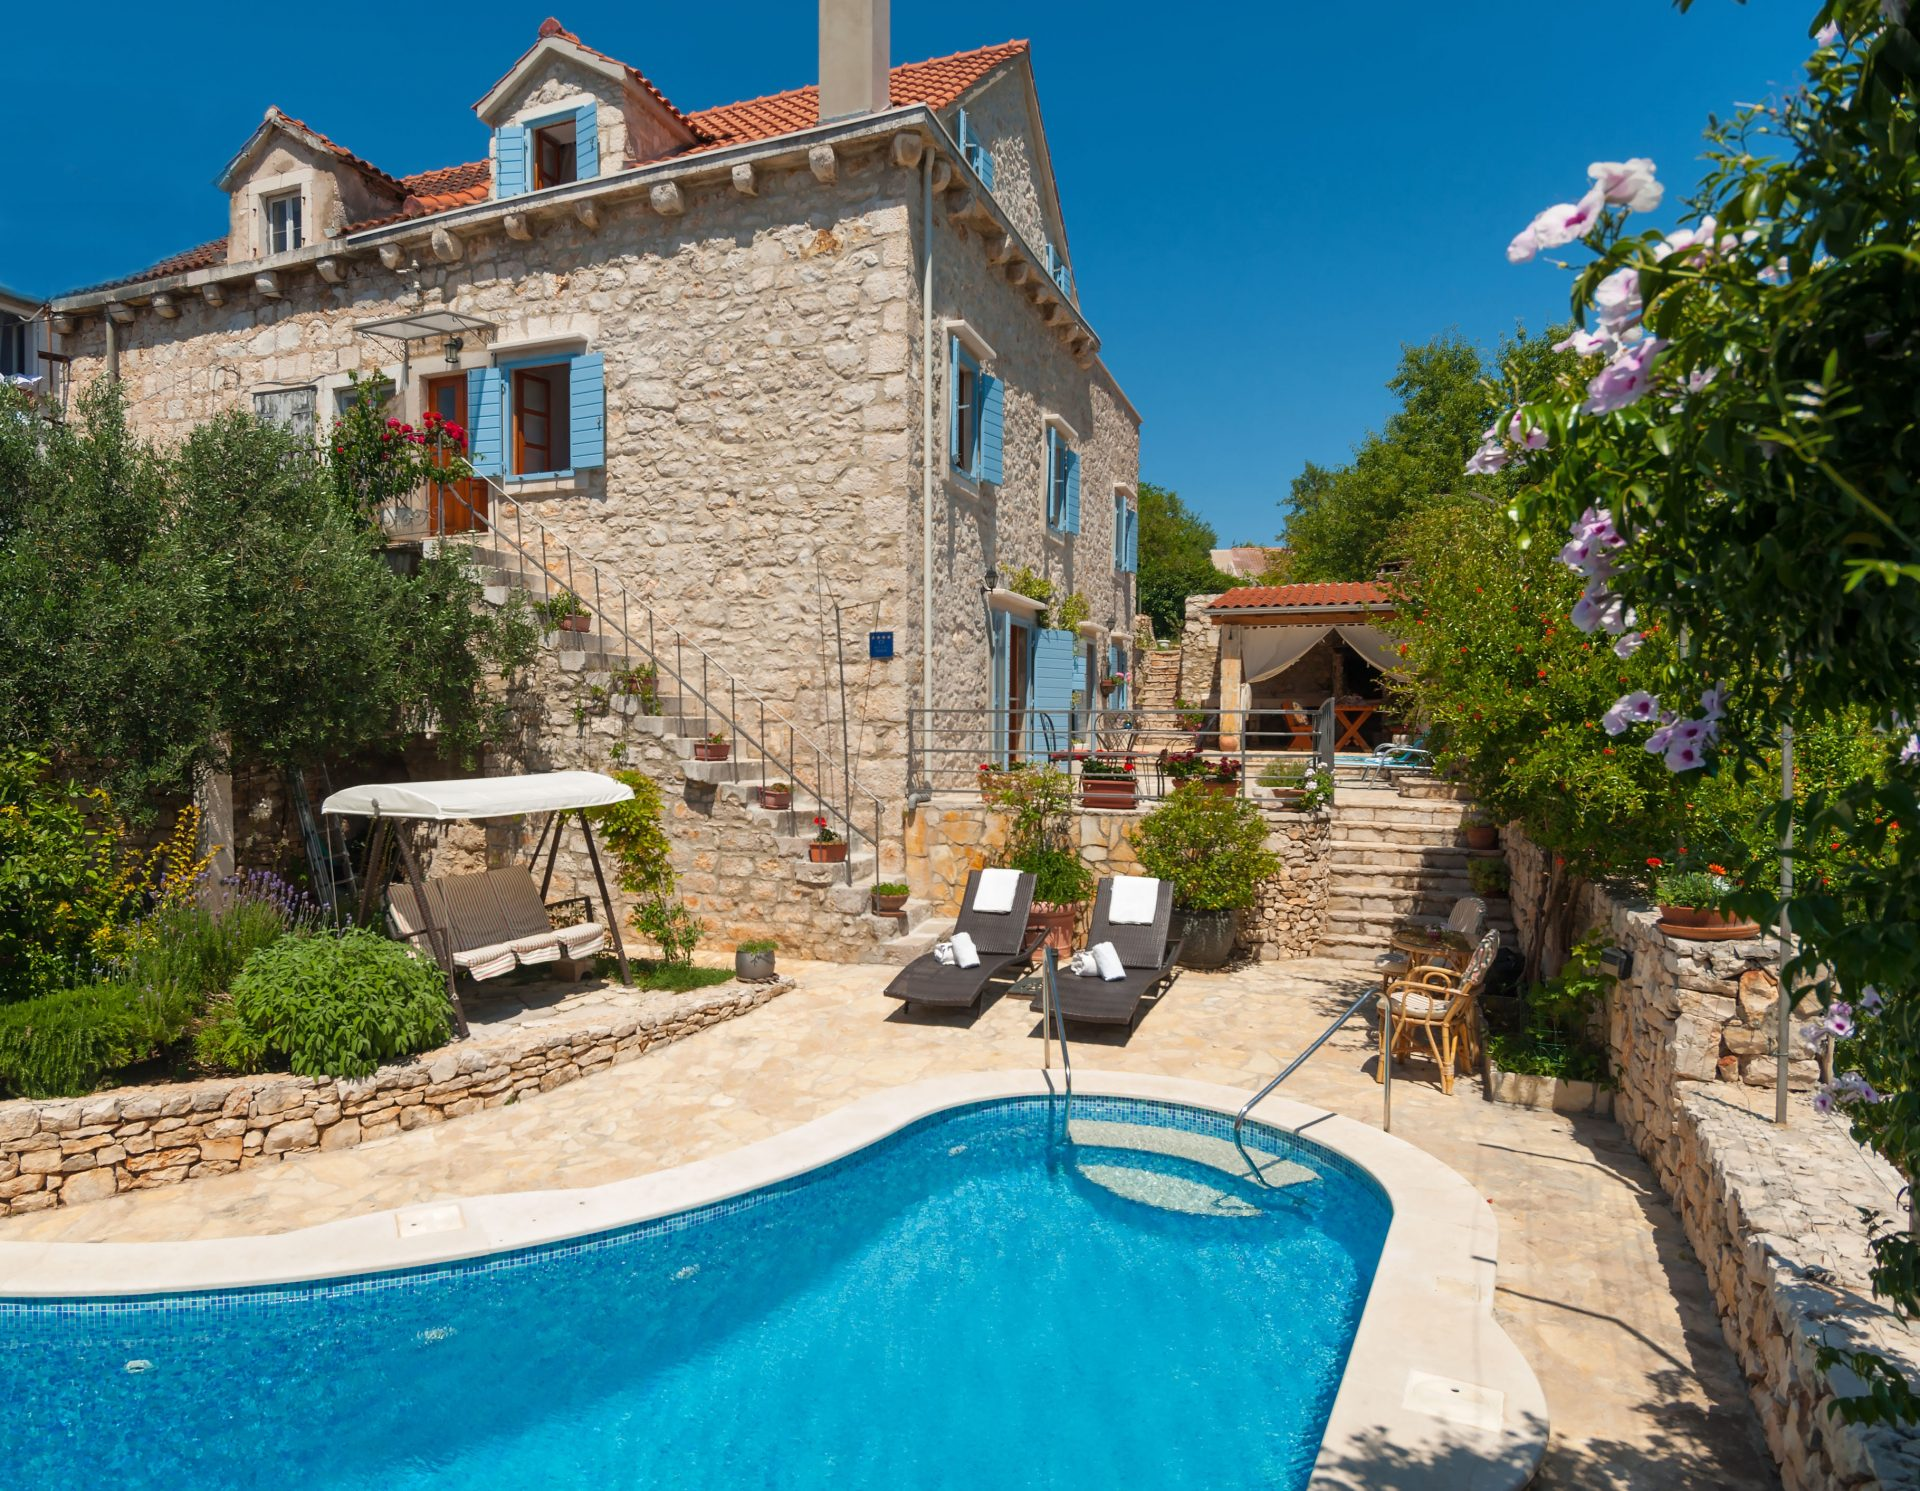 stone accommodation villa with pool